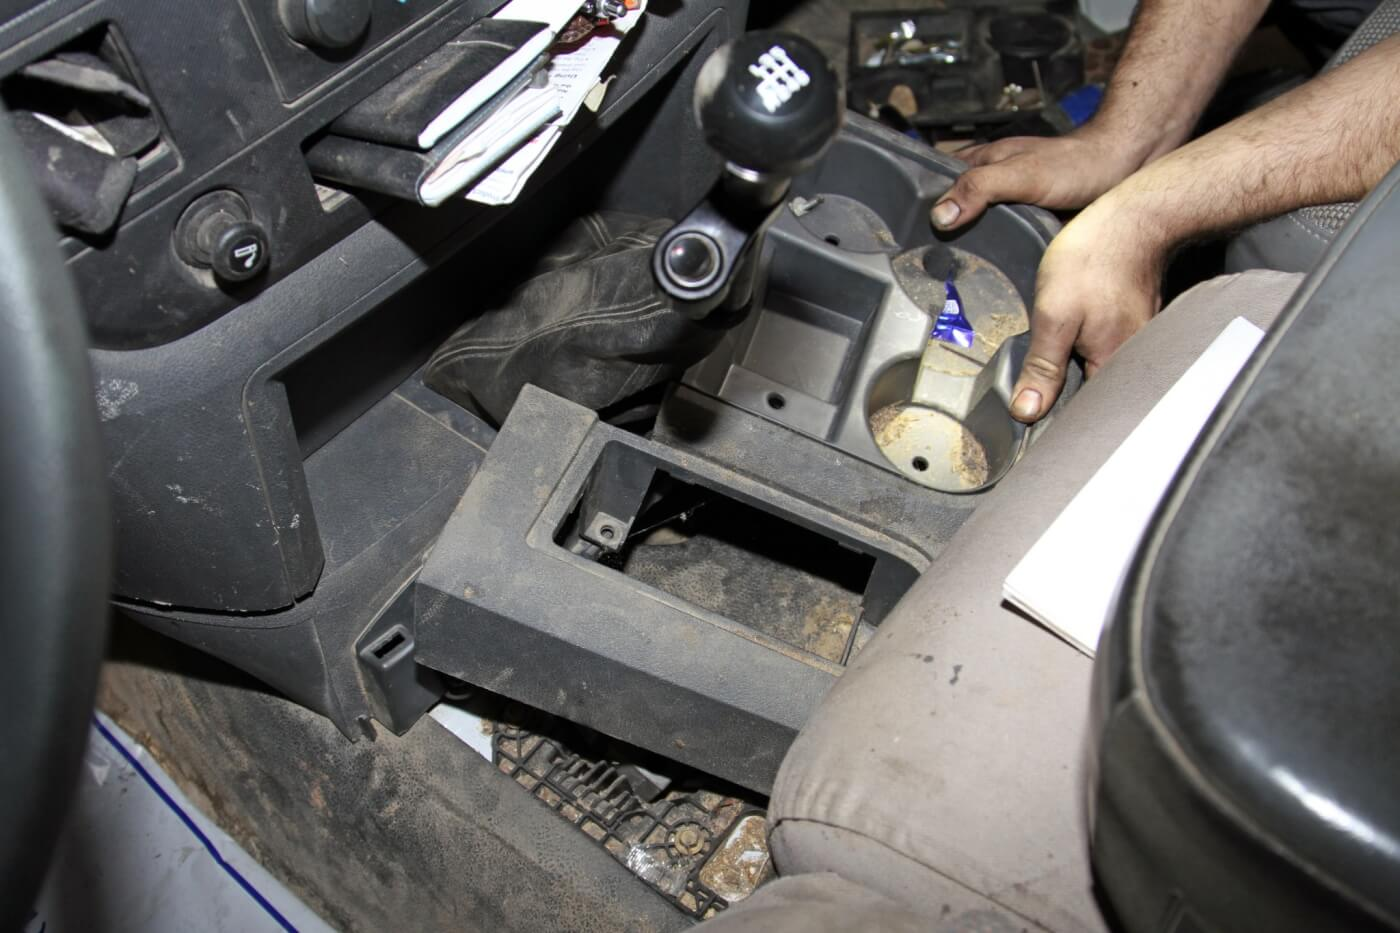 28. Then, he finished up the process by installing the shift levers and console pieces.